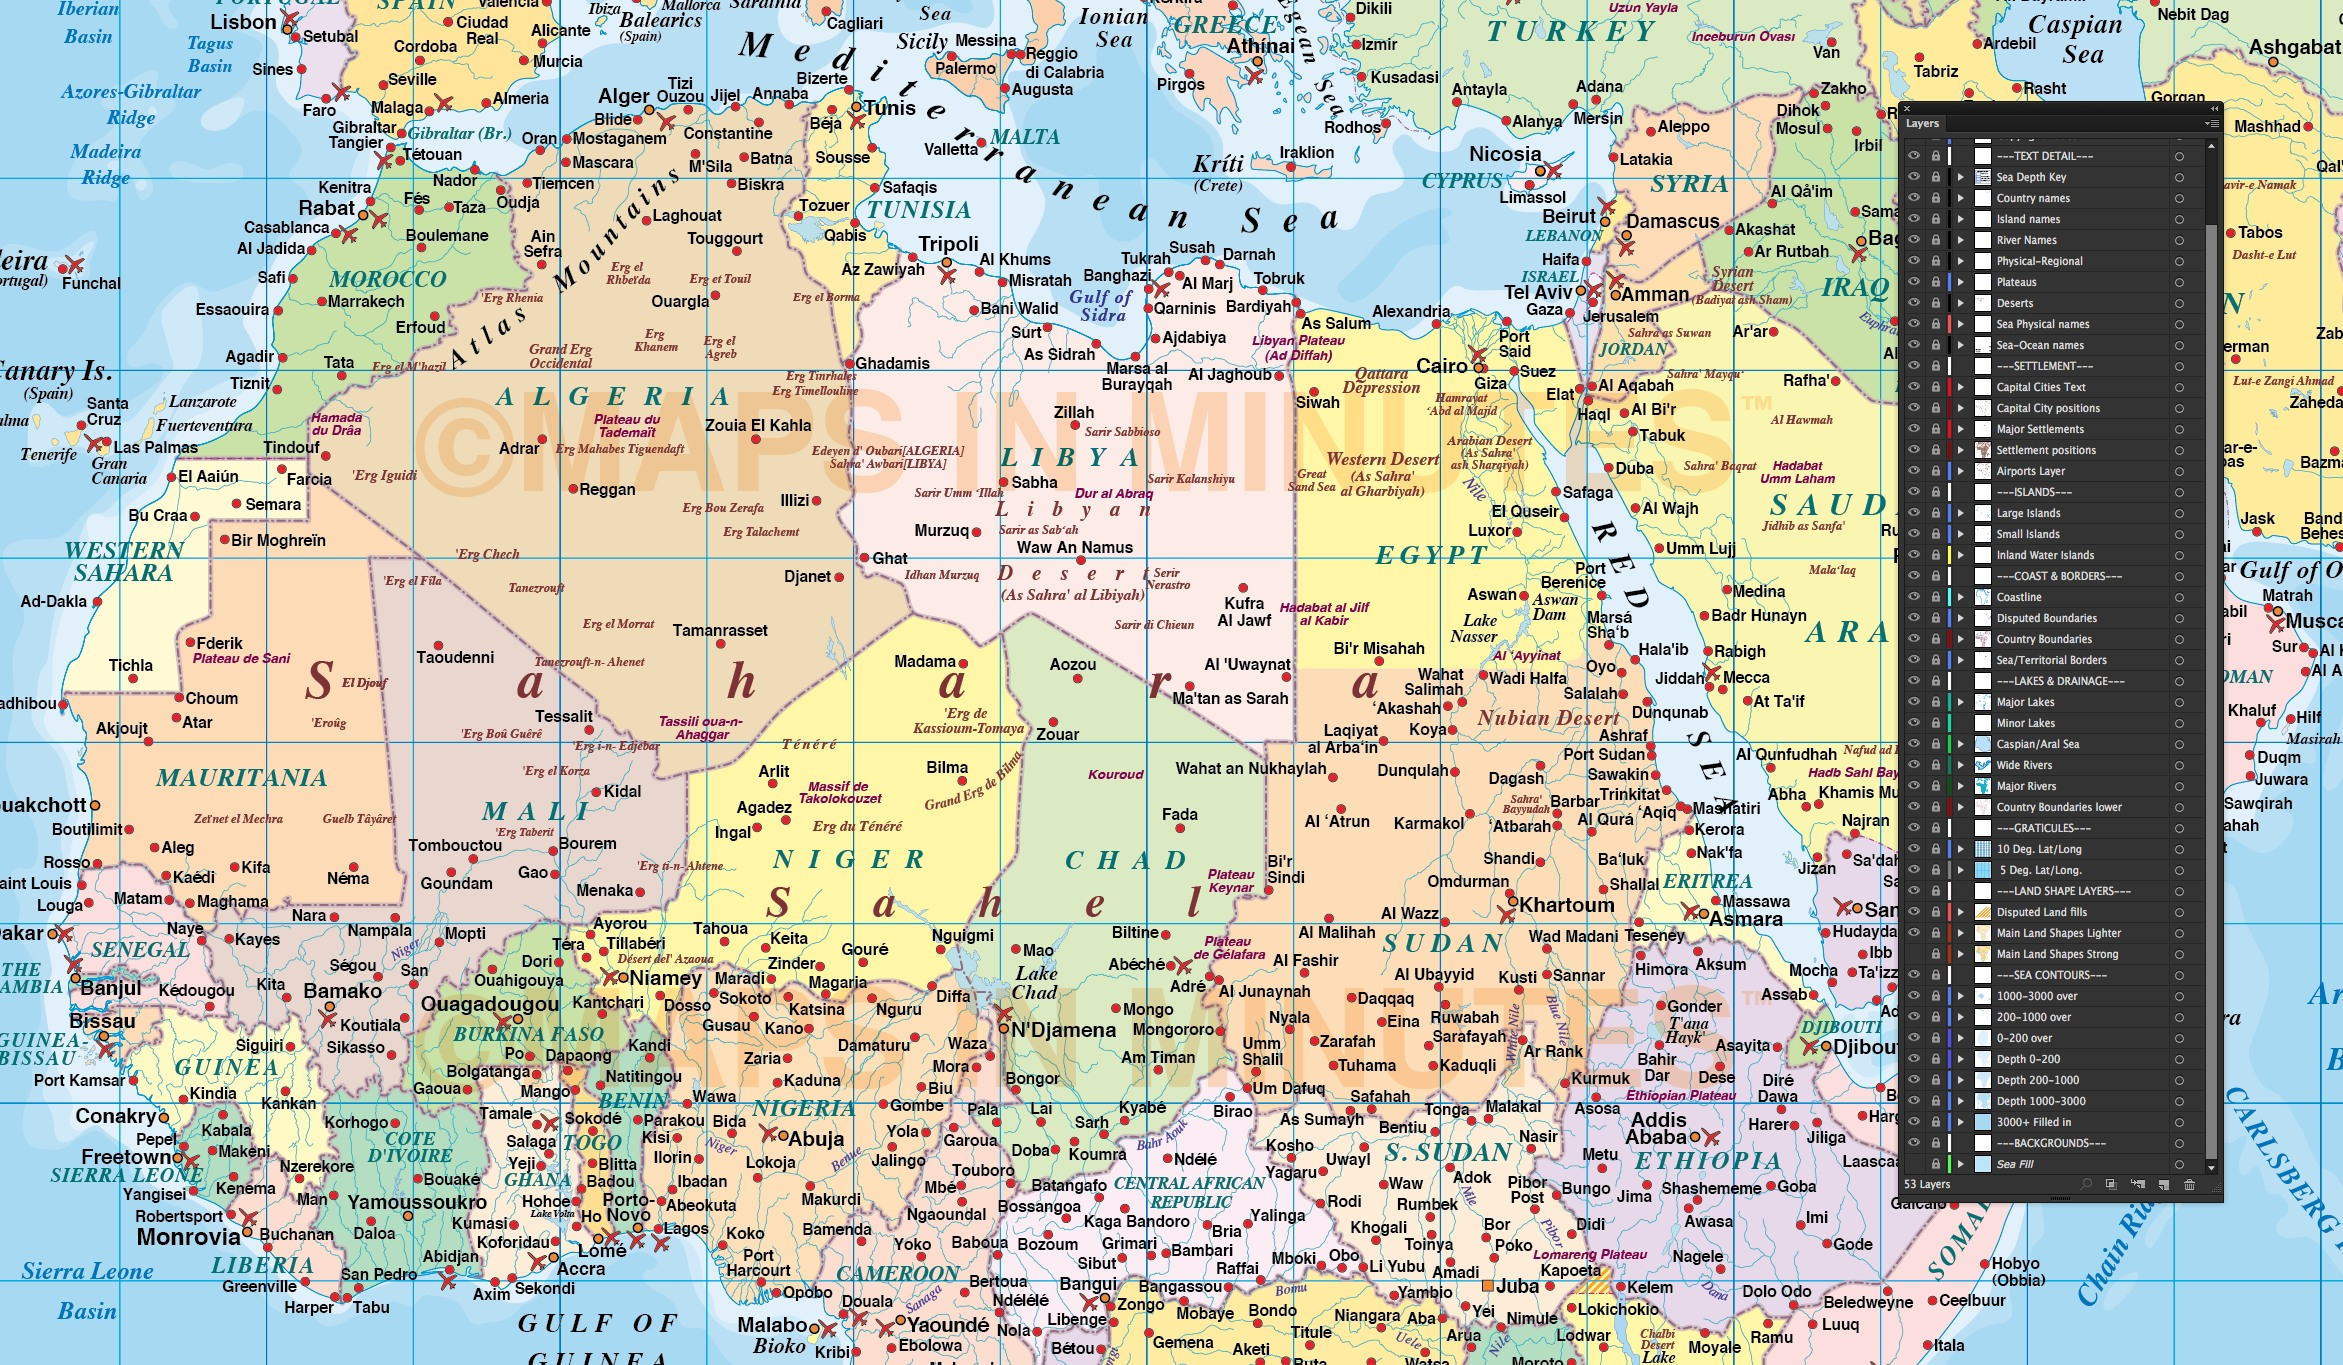 Digital Vector Map Of Africa Region Political With Ocean Contours - Wad madani map